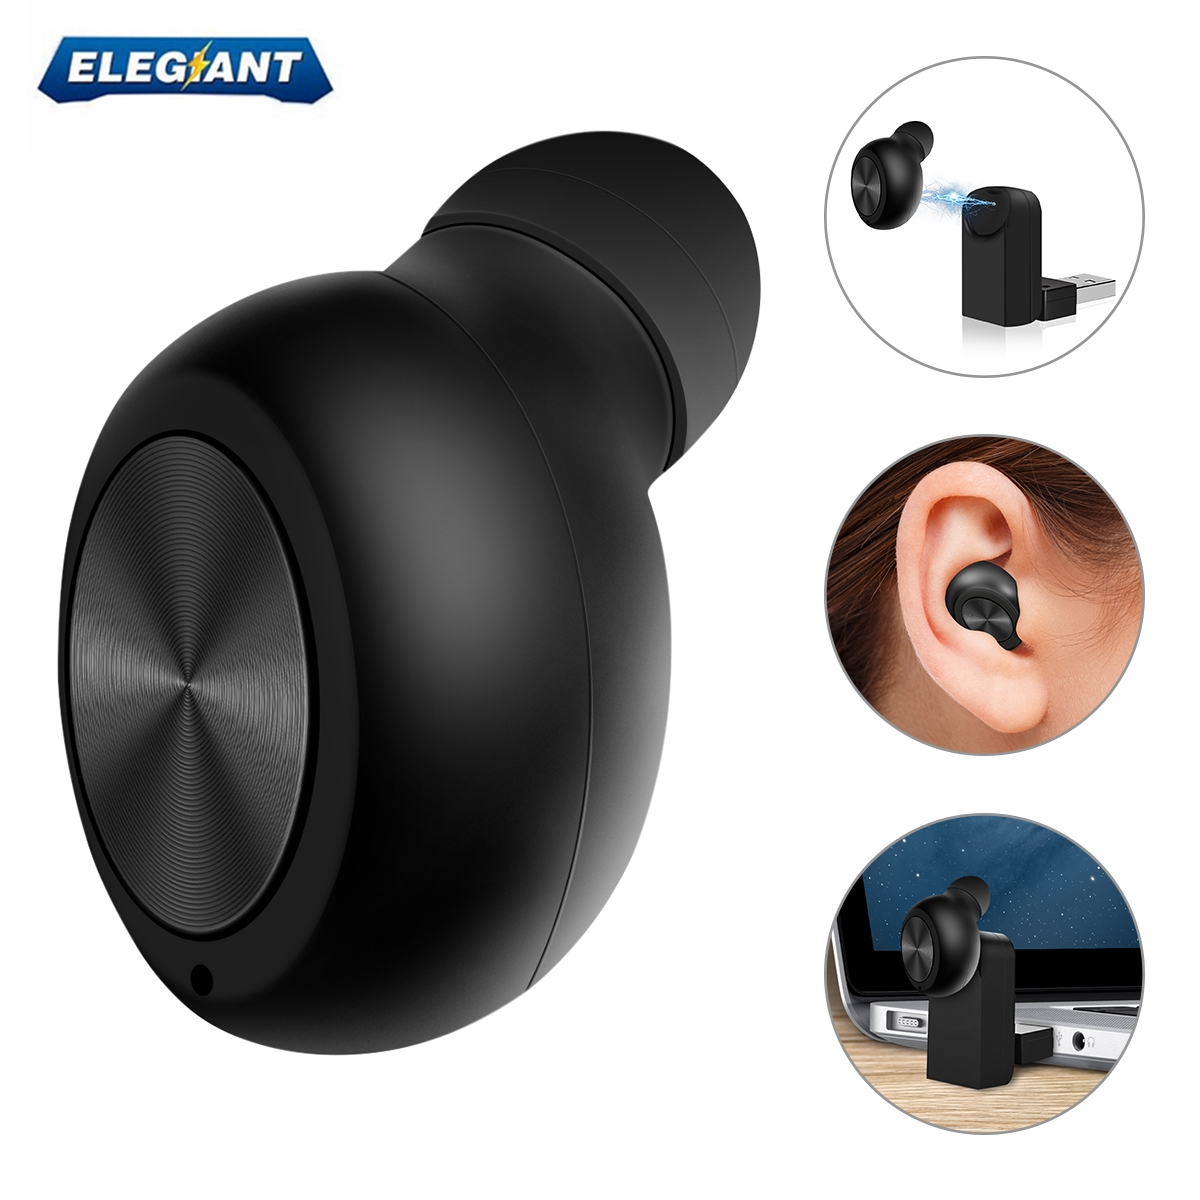 ELEGIANT Wireless Bluetooth Magnetic USB Charge Mini In-ear Headset Earbud Headphone Earphone Hands-free With Noise Reduction Cancelling Built-in Mic for Office Business Driver